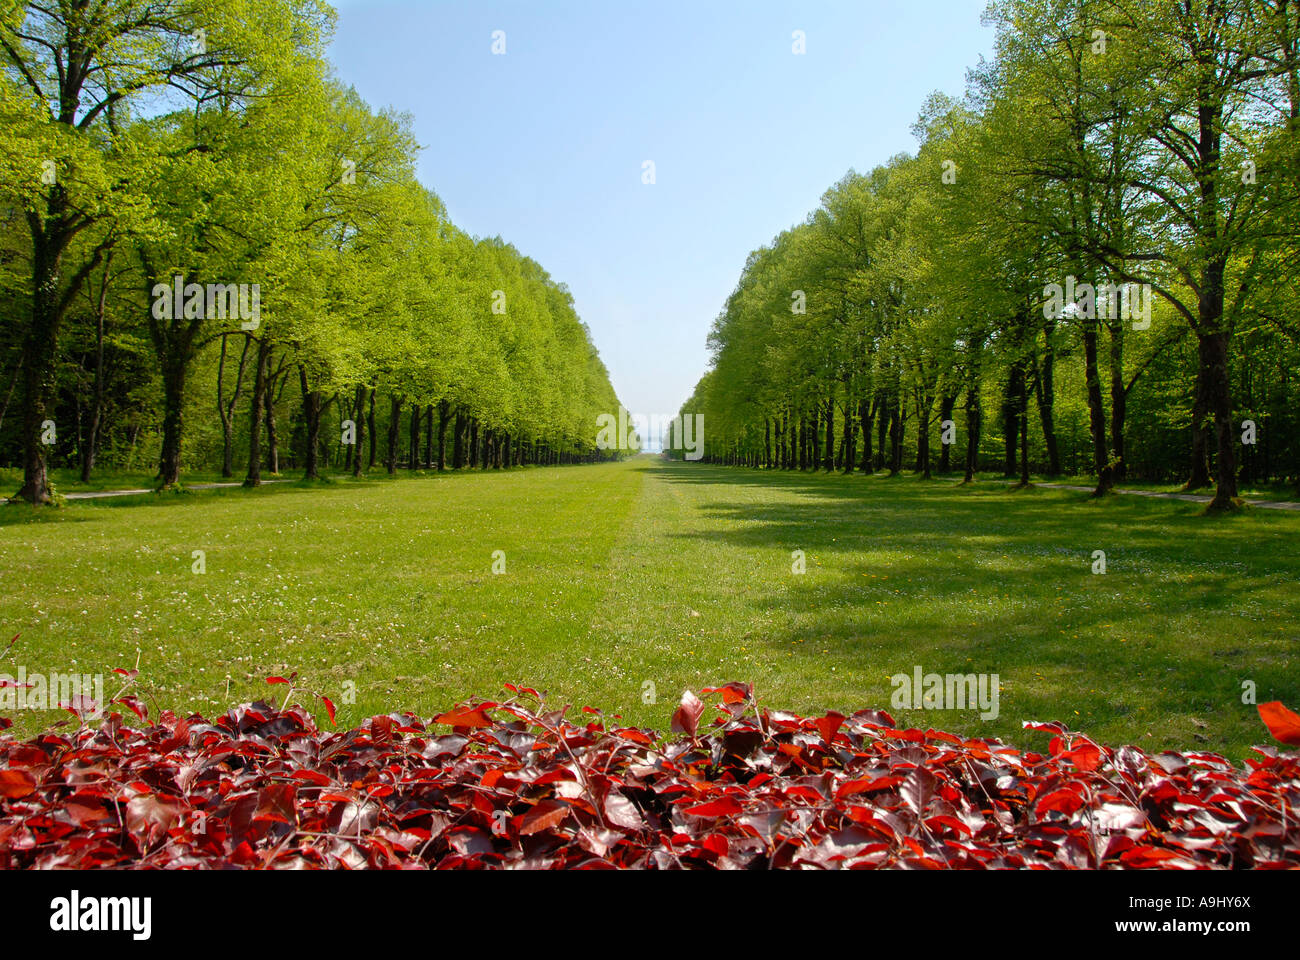 Park with lawn in forest aisle at Schloss Herrenchiemsee Herreninsel Chiemsee Bavaria Germany Stock Photo